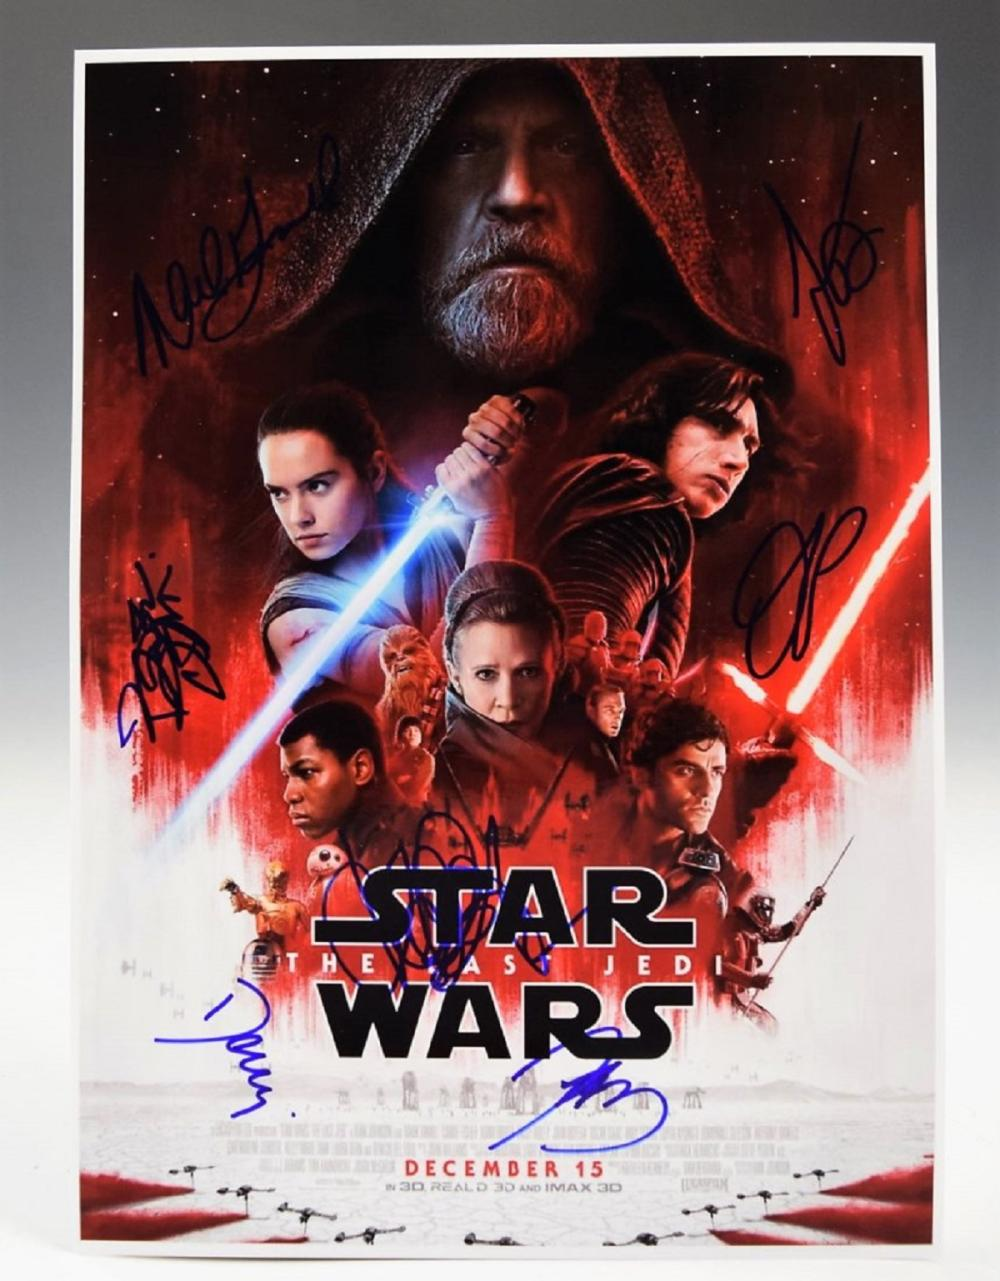 Star Wars Cast Signed Photo